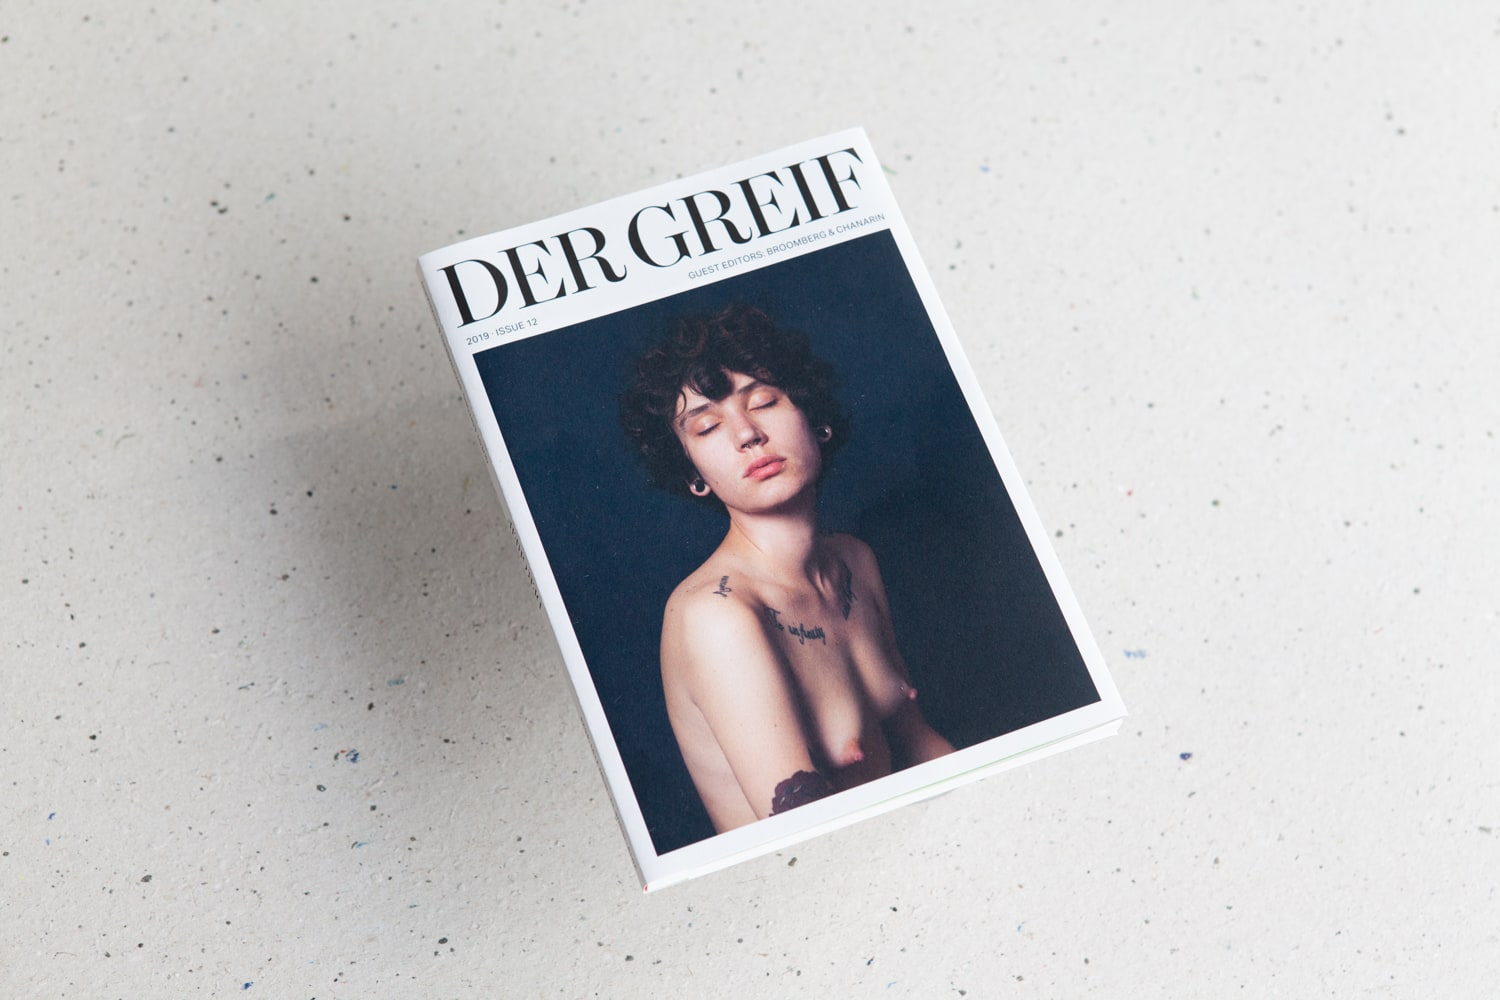 Der Greif x Broomberg and Chanarin - Issue 12 - Der Greif's latest issue guest edited by Broomberg and Chanarin.Entitled